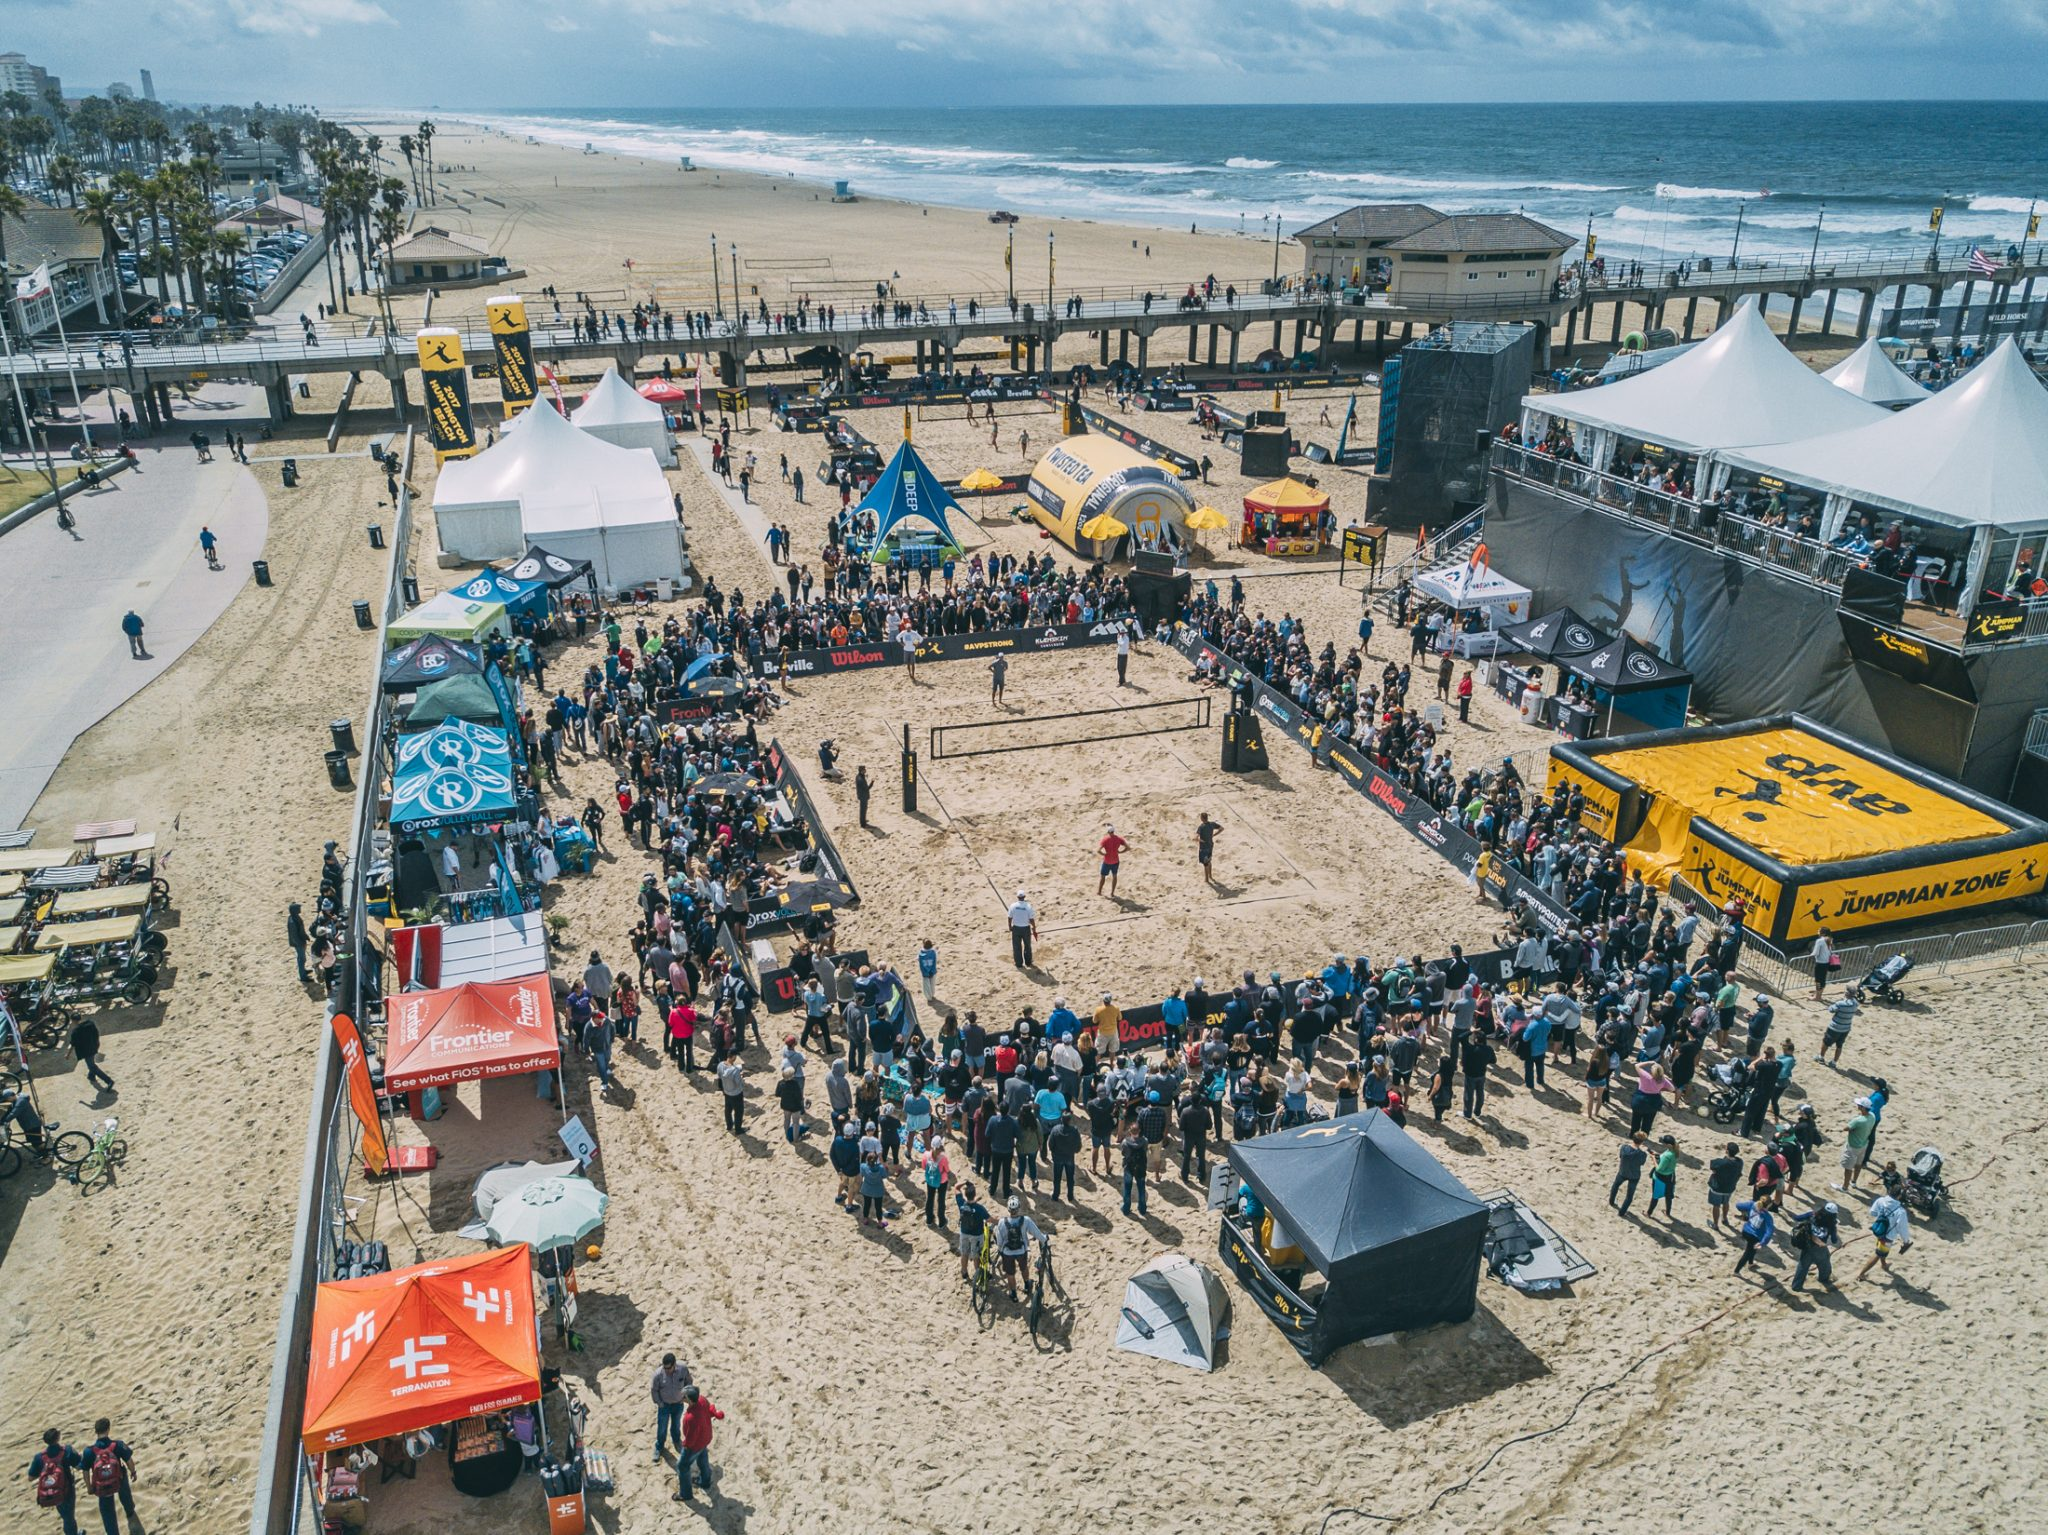 Drone Photos of the AVP Huntington Beach Open 2017